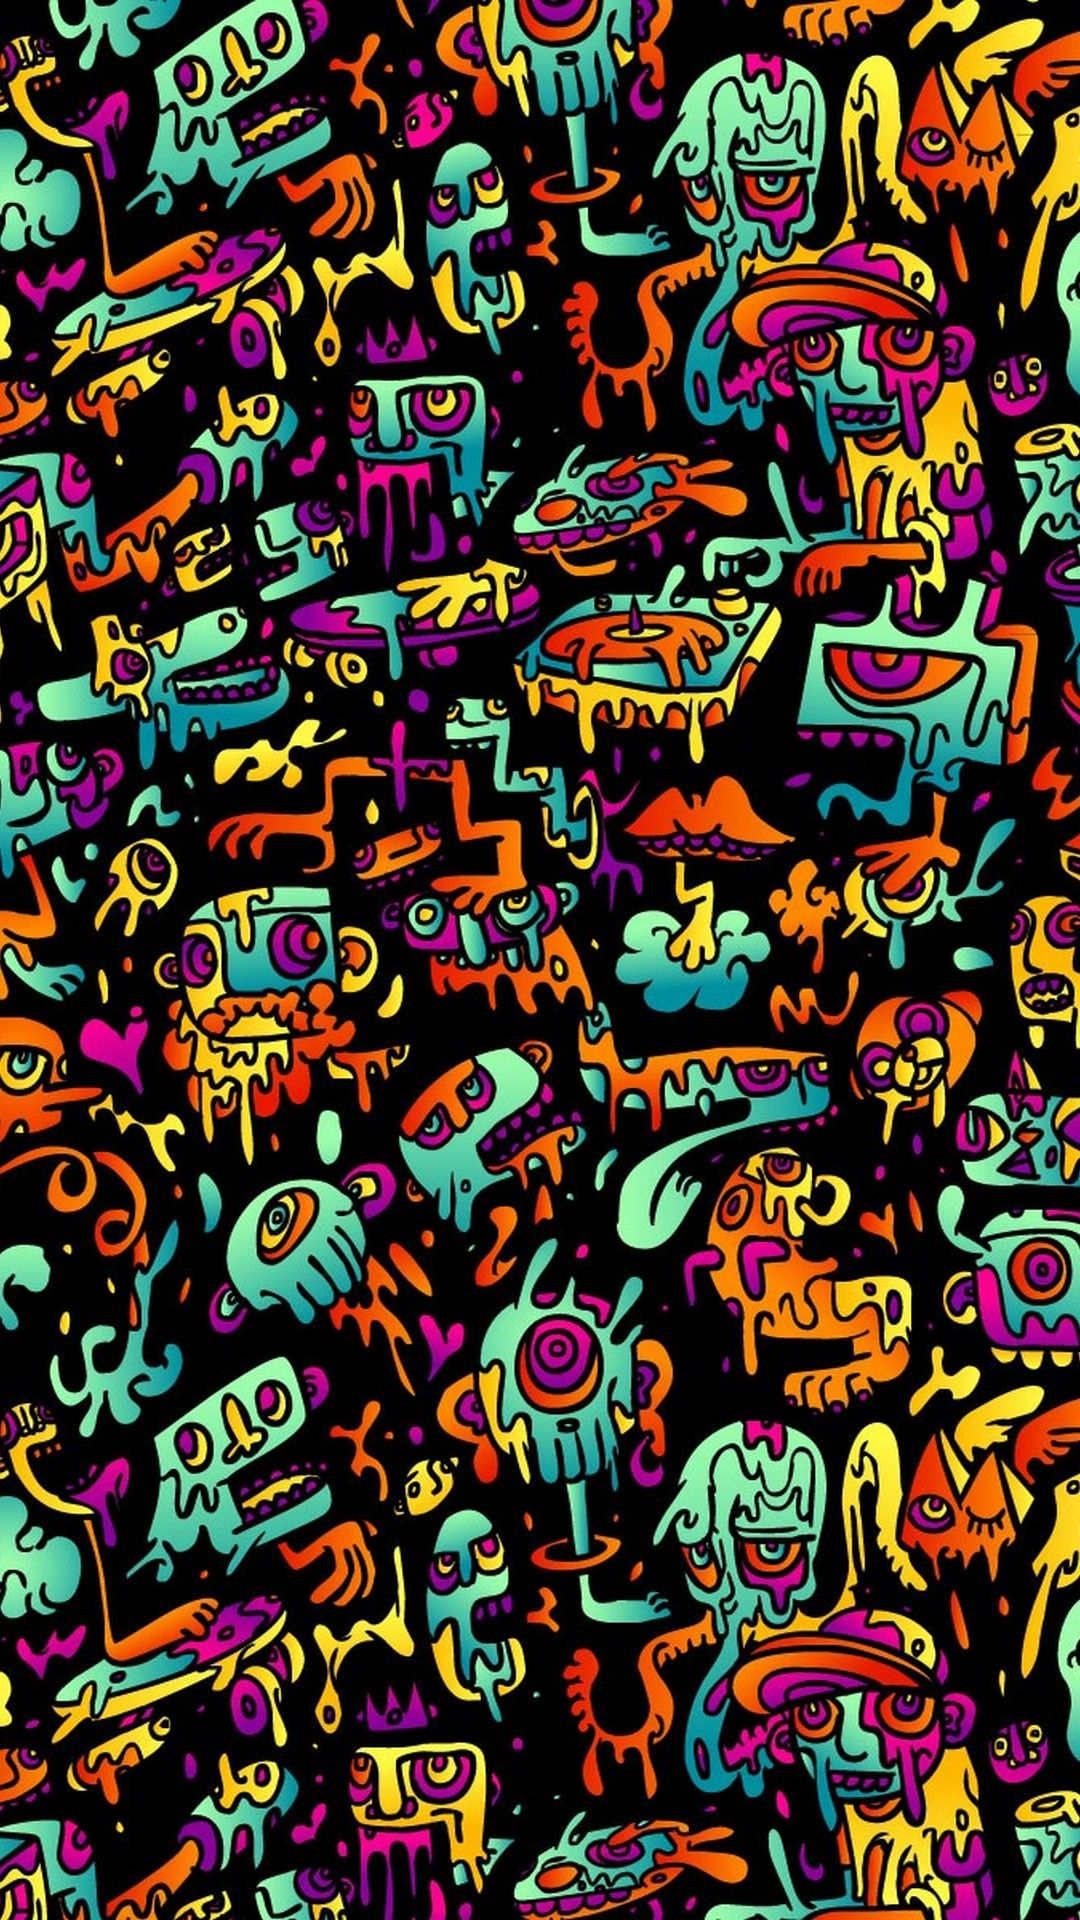 Psychedelic Backgrounds For Android Best Android Wallpapers Abstract Wallpaper Psychedelic Background Trippy Wallpaper